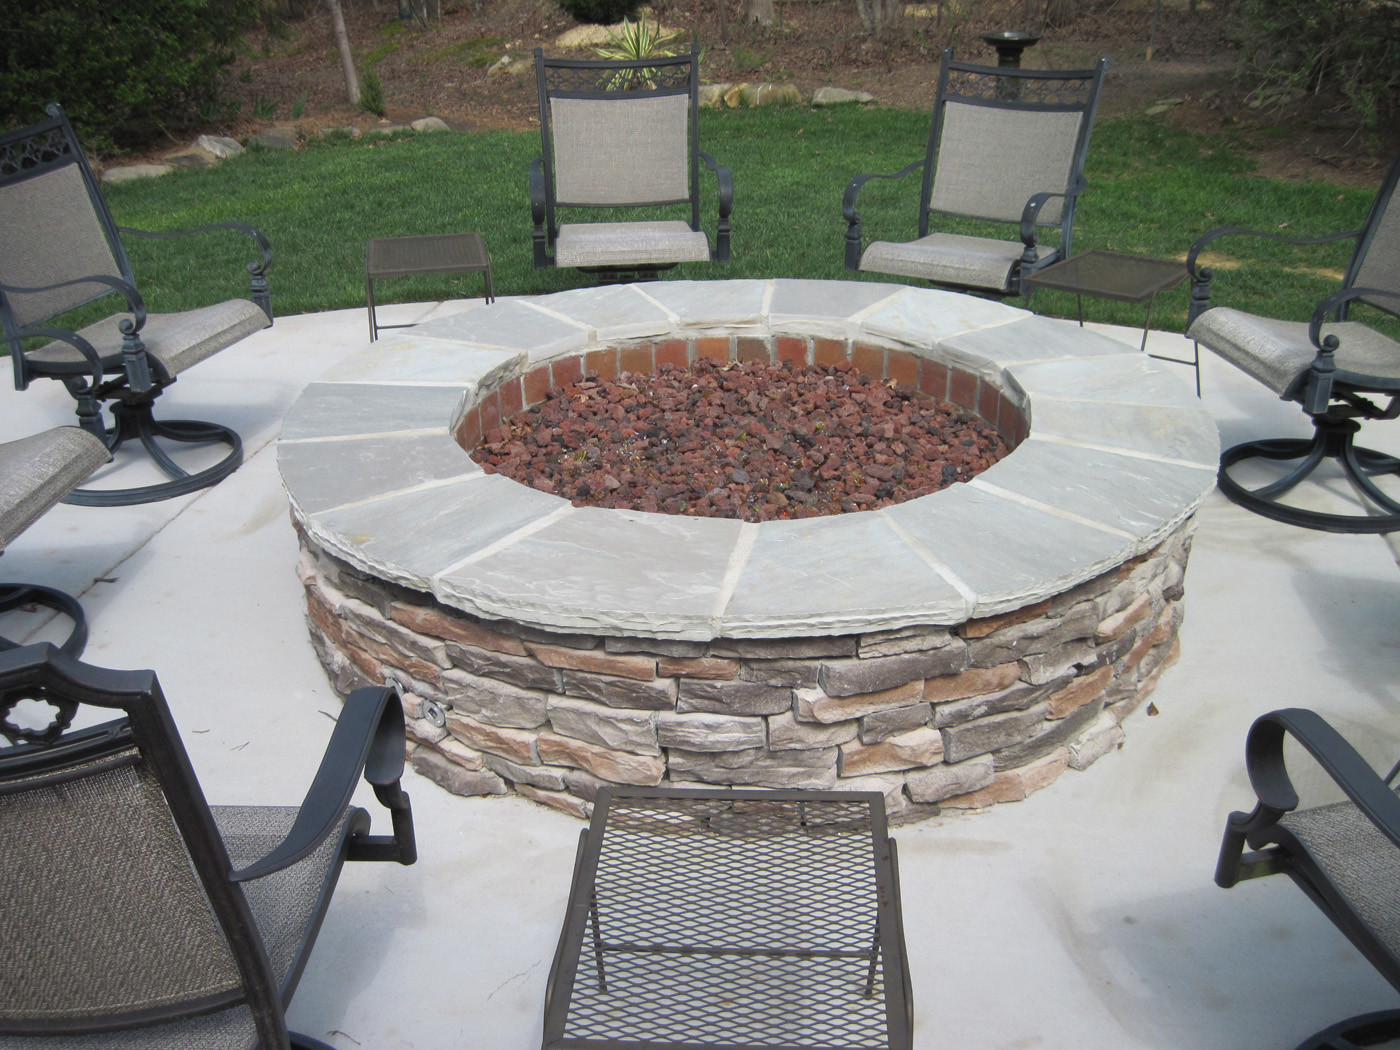 Best ideas about Outdoor Gas Fire Pits . Save or Pin Raleigh Outdoor Fire Pit Builder Now.